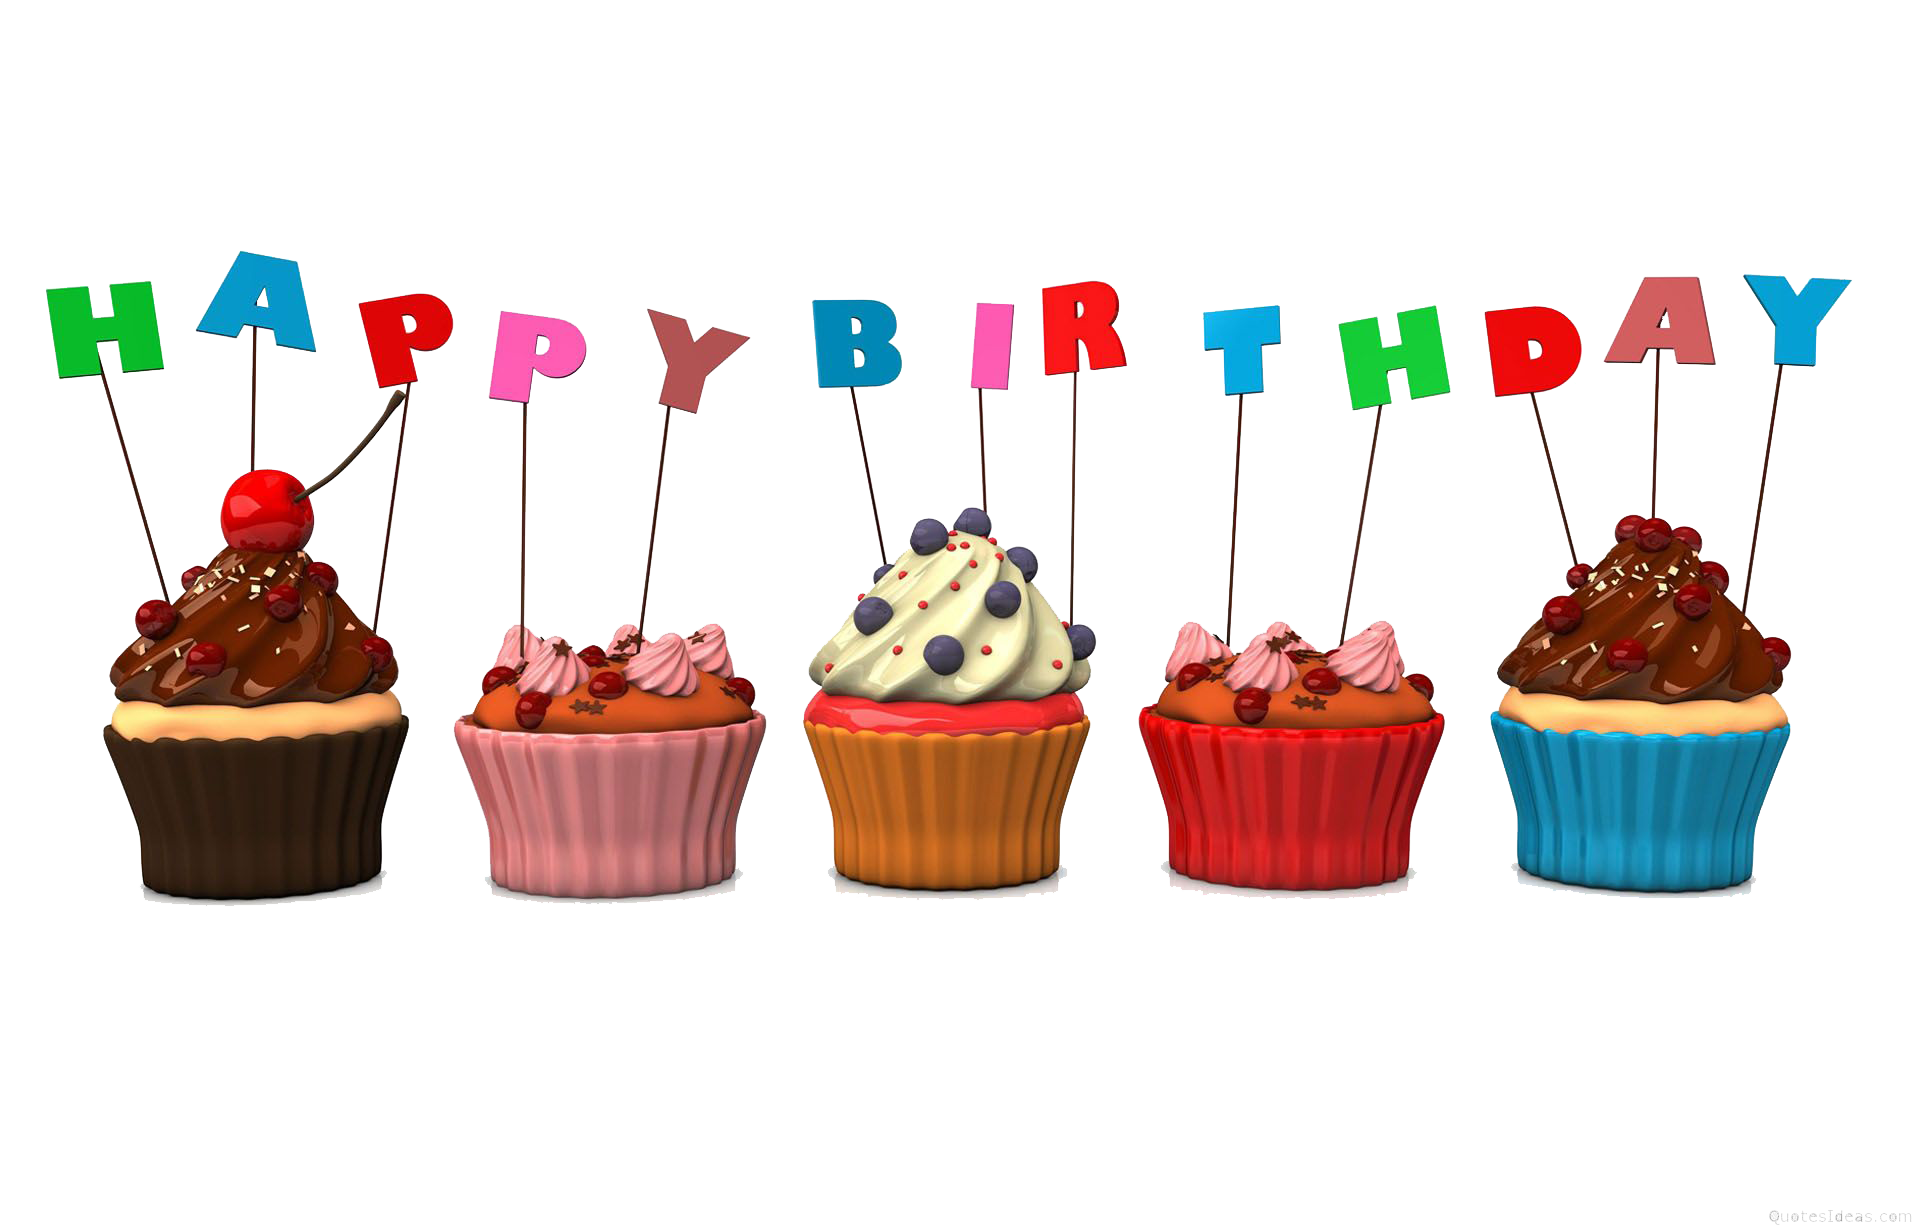 Birthday png hd pictures transparent birthday hd picturesg images birthday cake png hd png image birthday png hd pictures altavistaventures Image collections